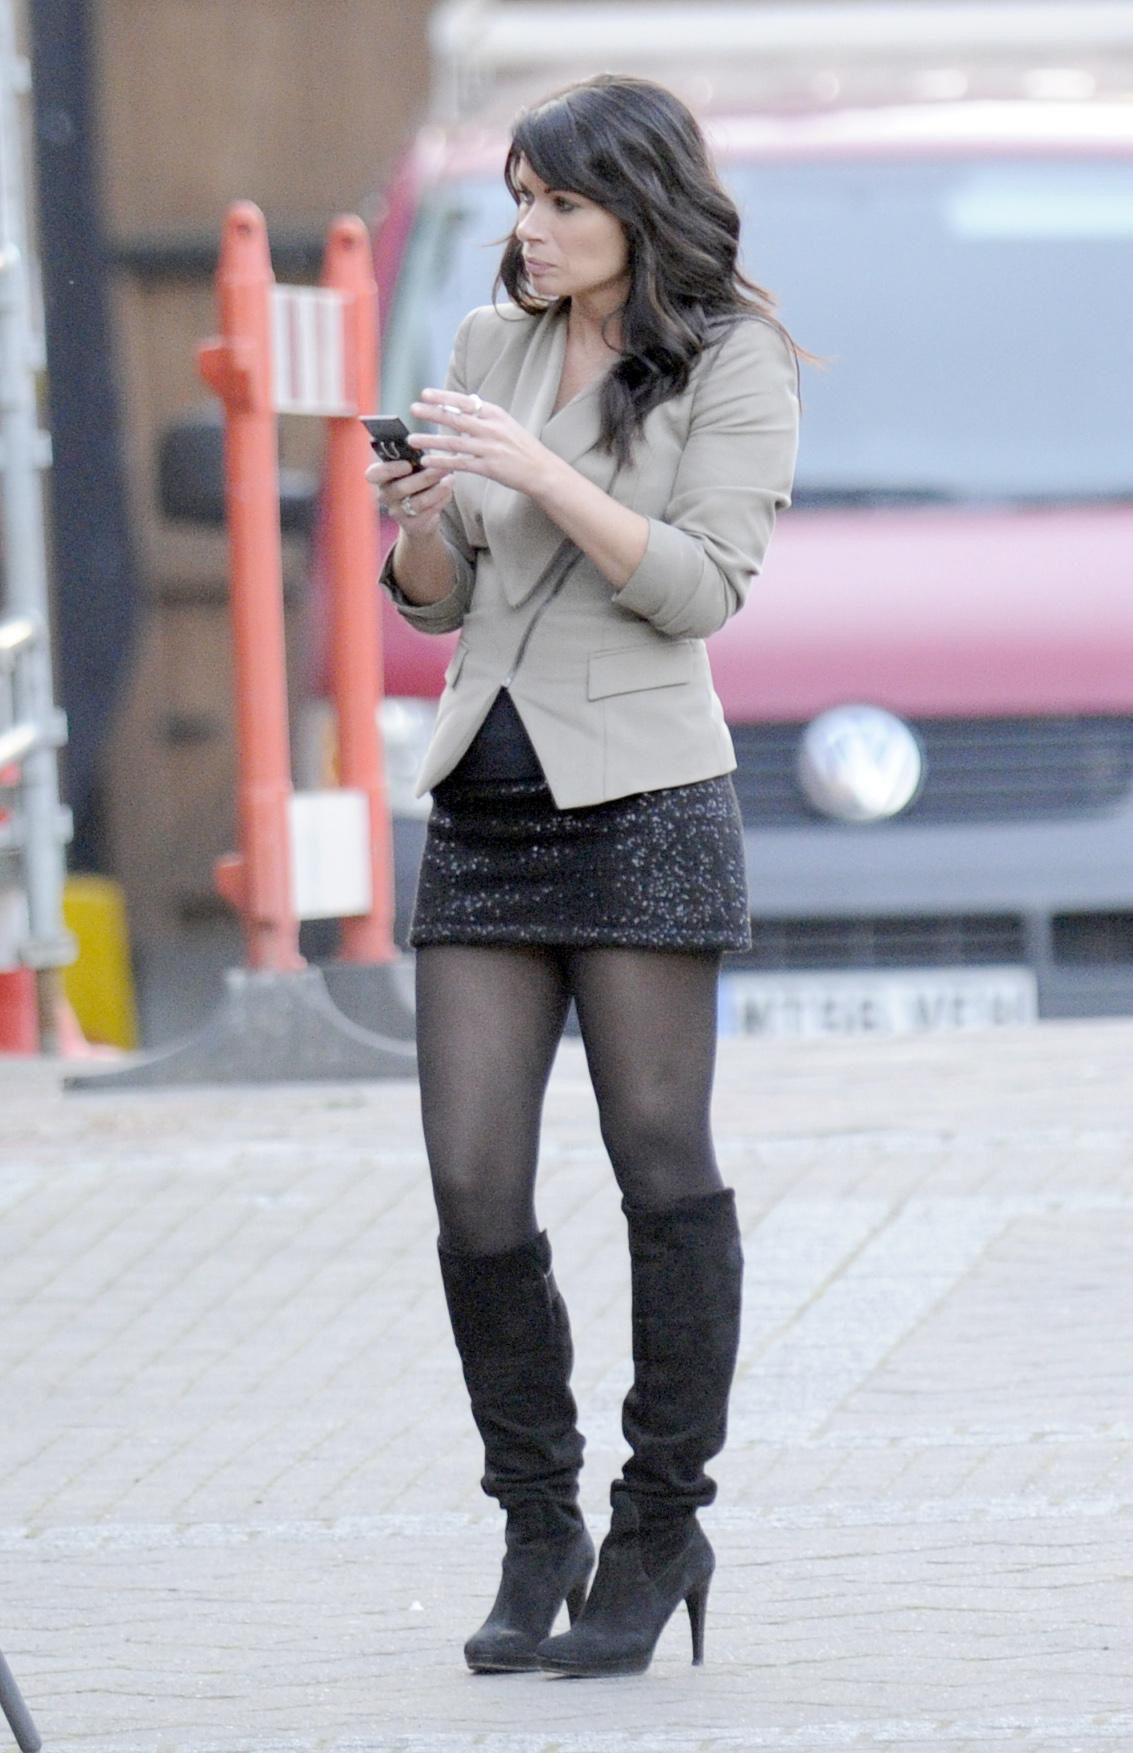 Alison King Hot pinkevdoc on miniskirts | hot outfits, alison king, fashion